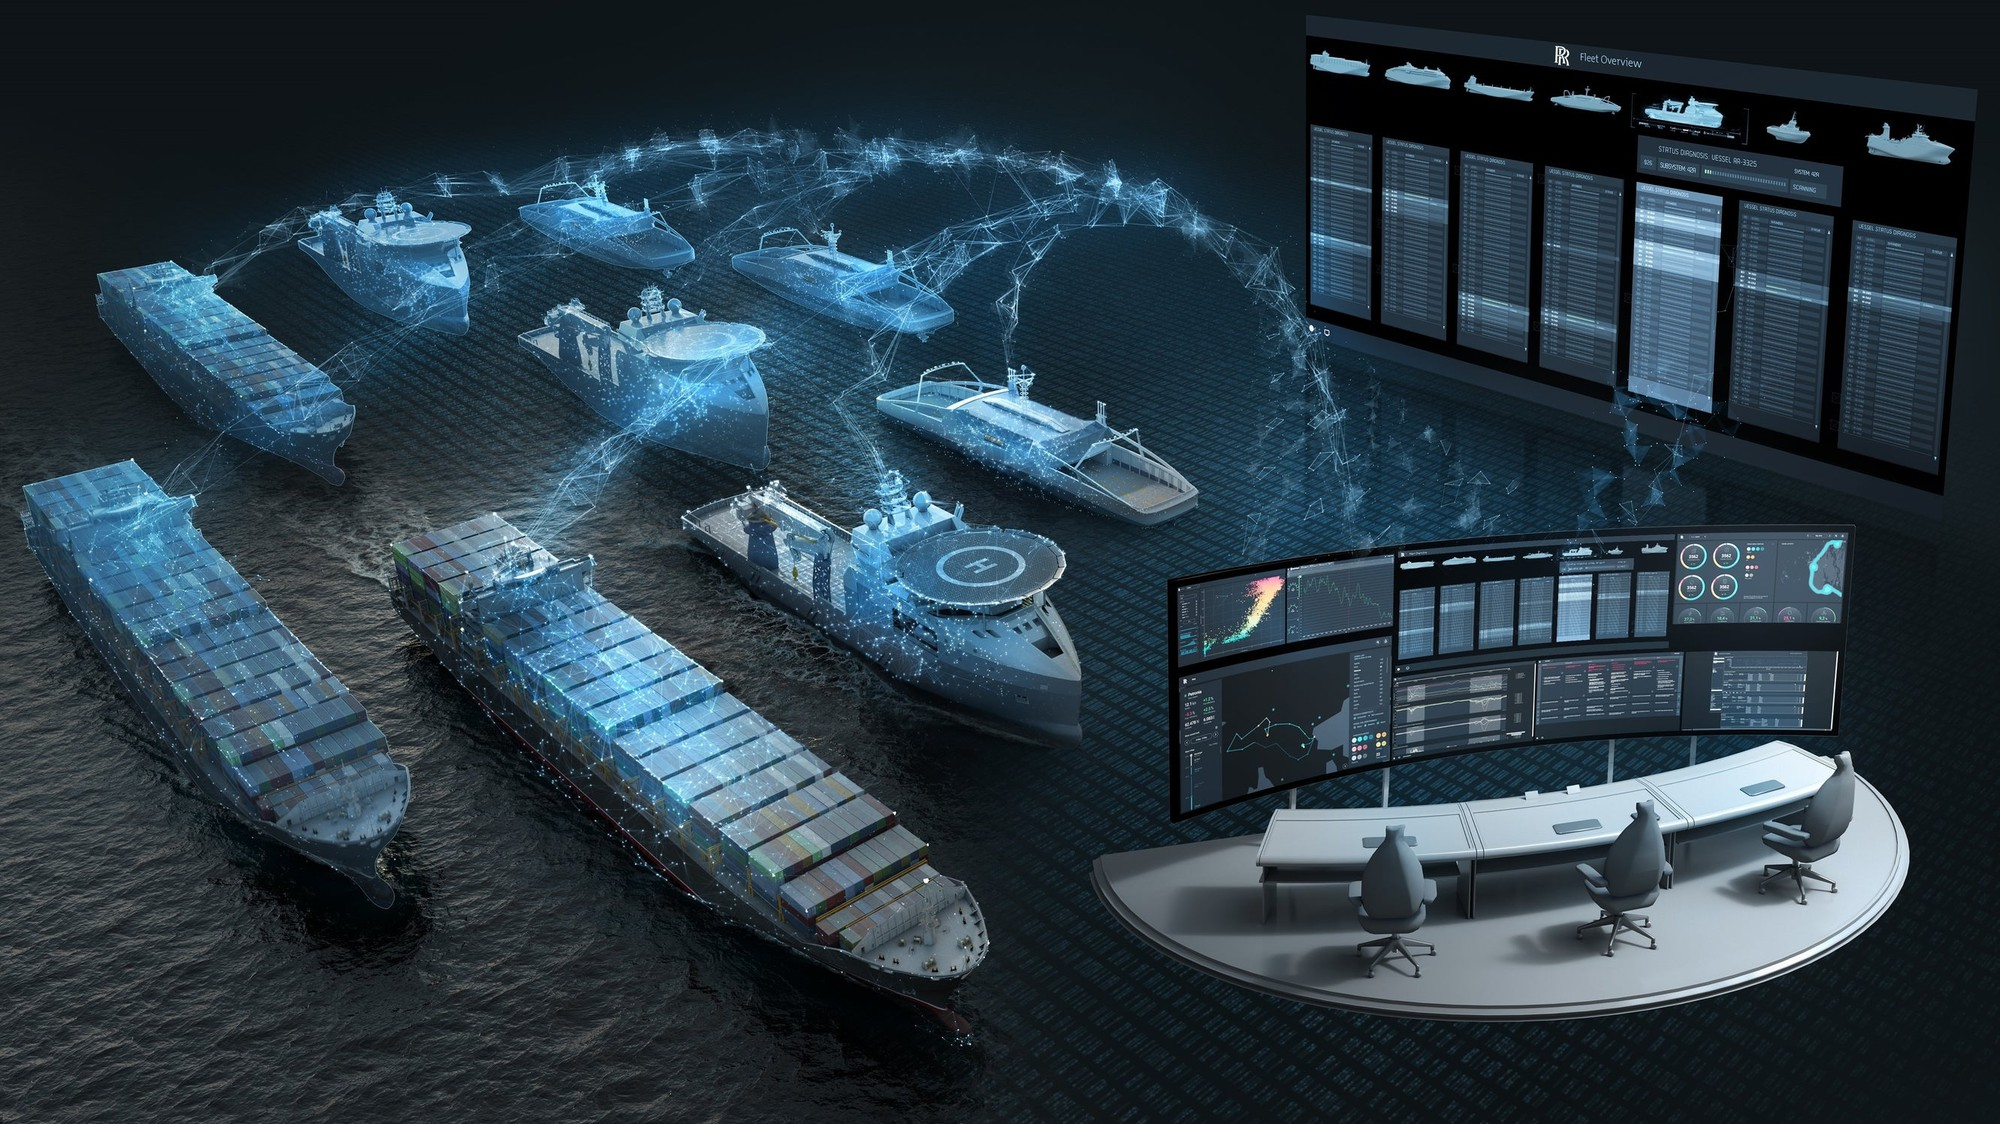 Ship control centre for autonomous journeys